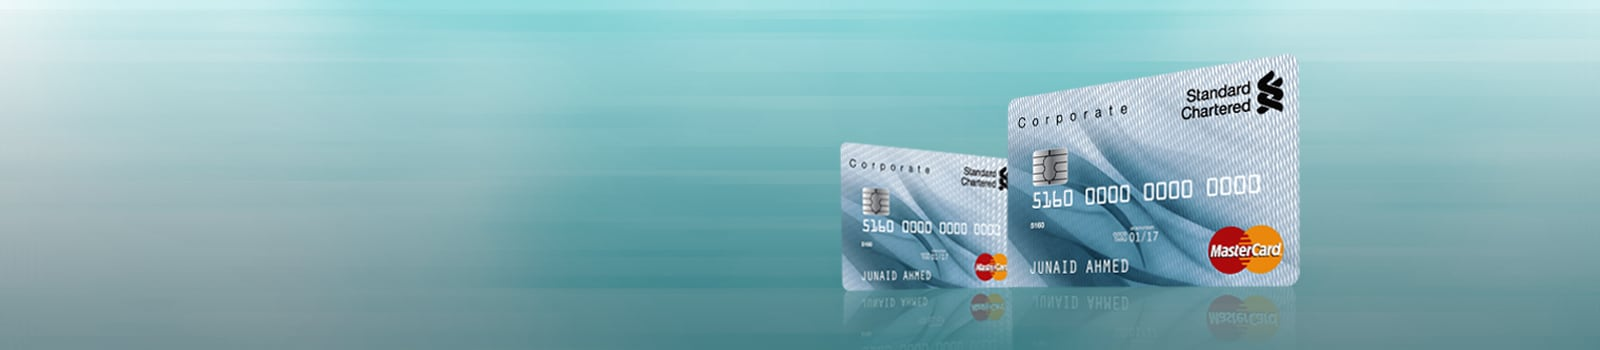 Standard Chartered Corporate Card